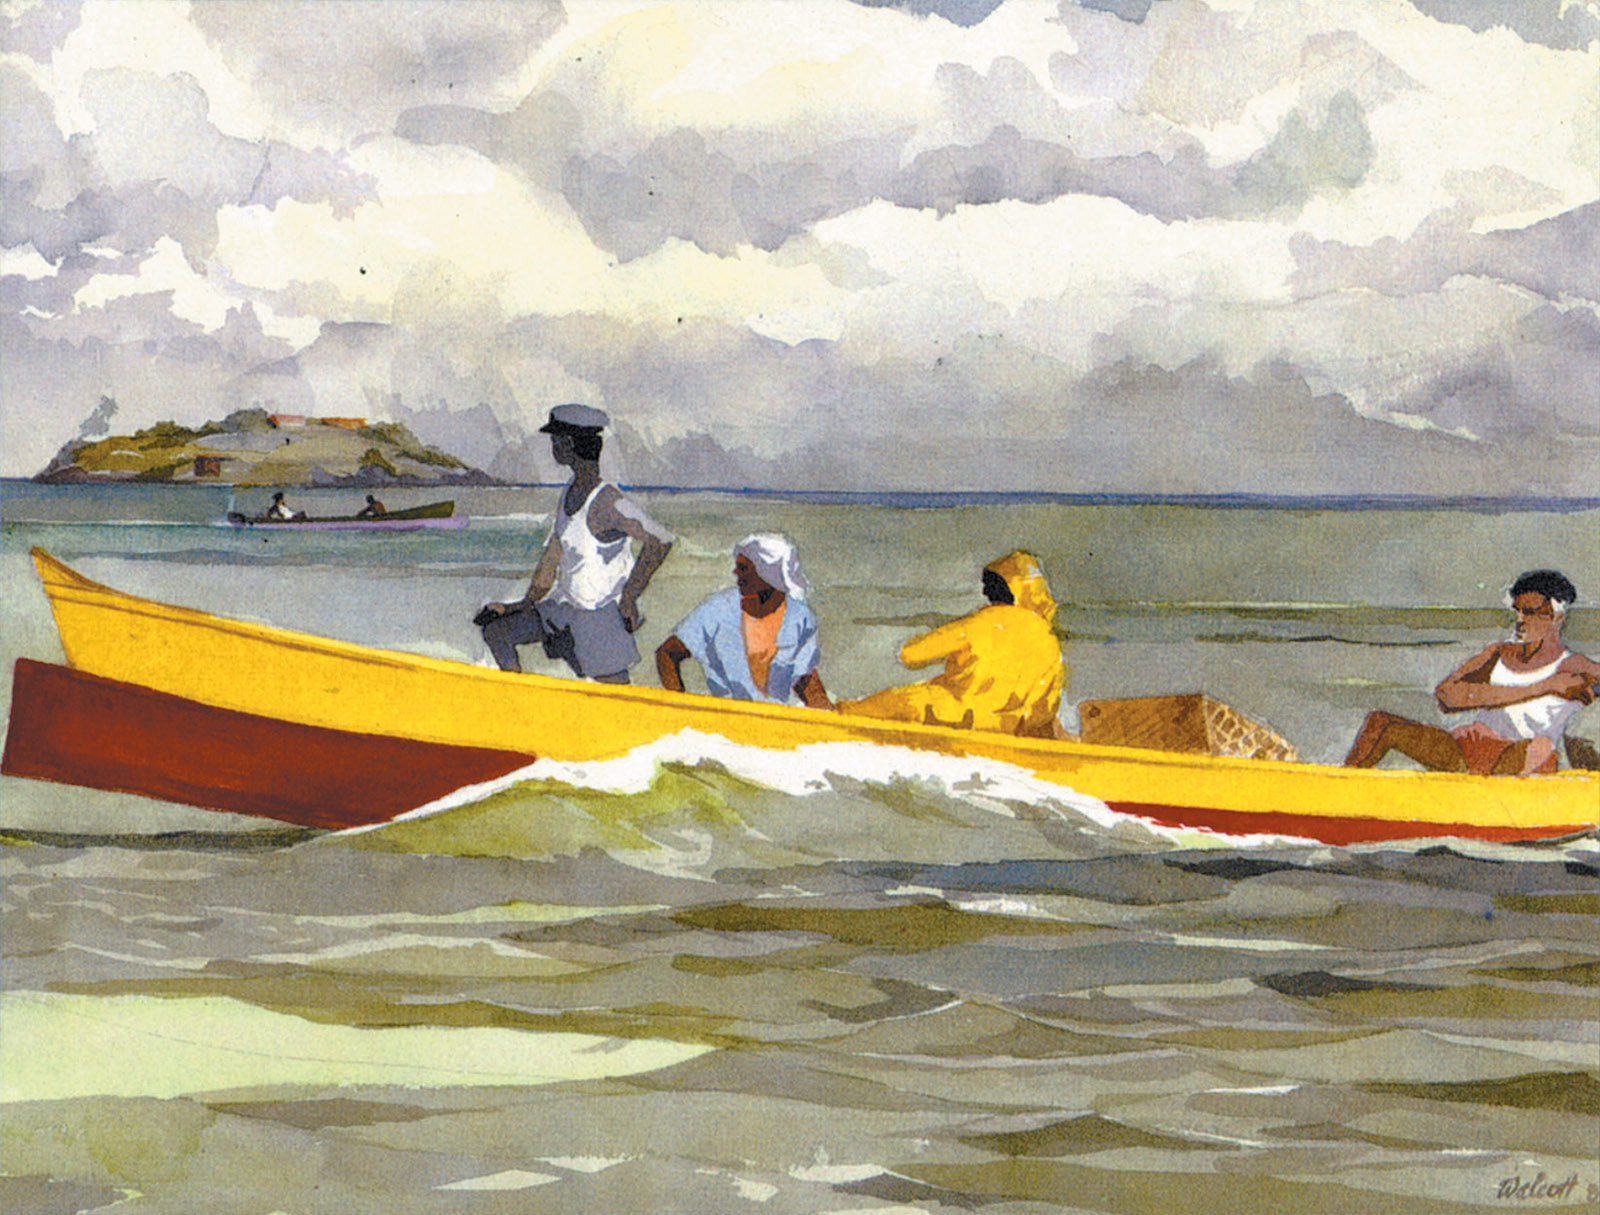 Painting by Derek Walcott, from the cover of his book-length poem Omeros, 1990